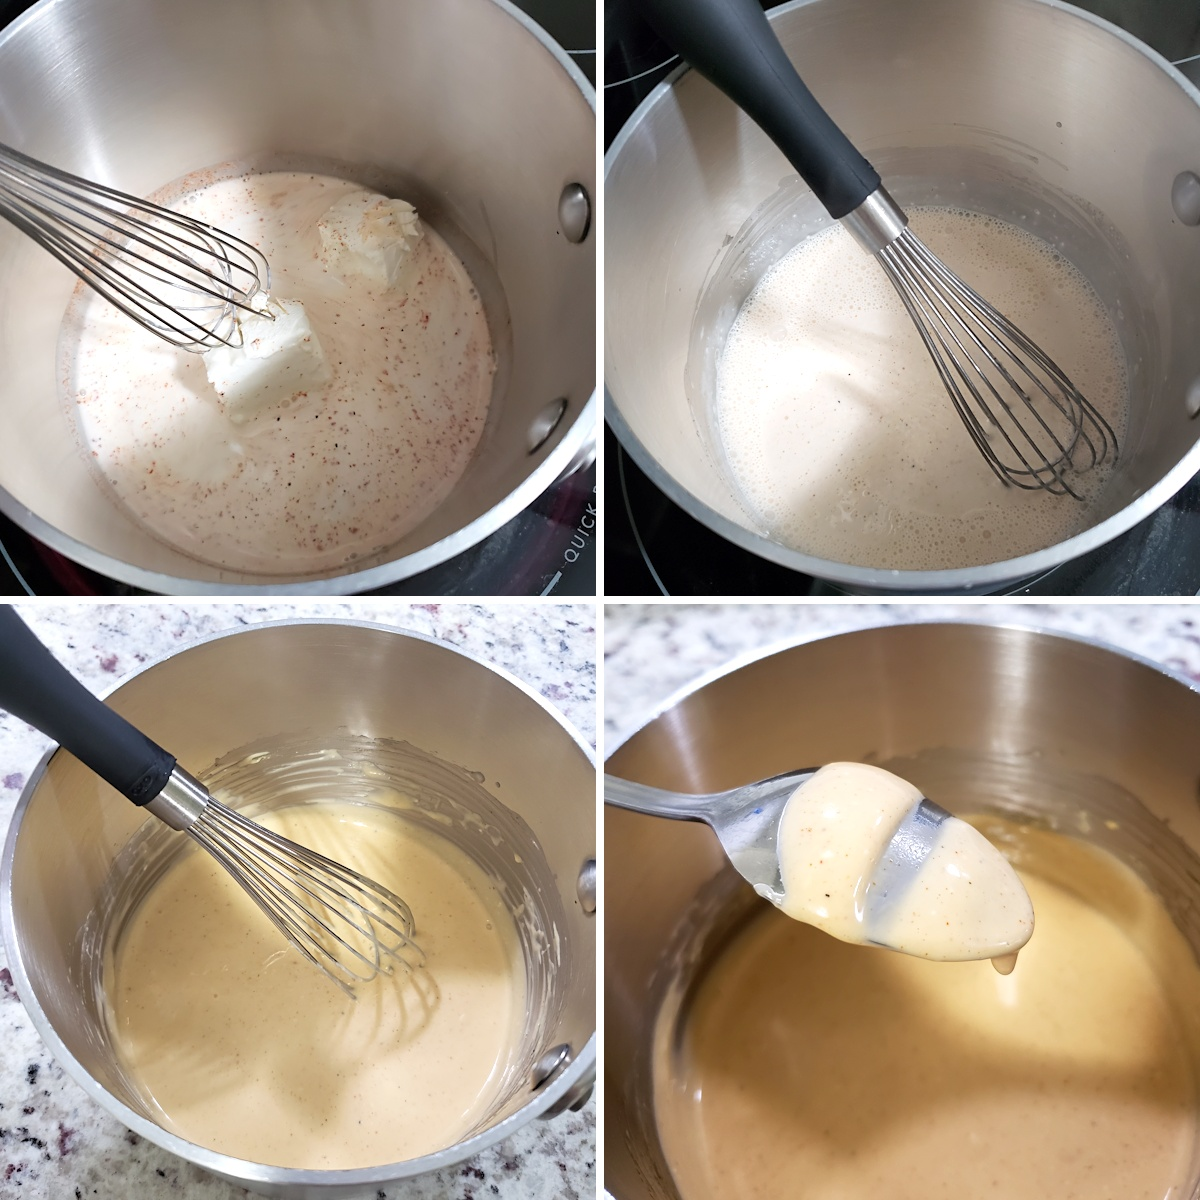 Whisking cheese sauce in a saucepan.